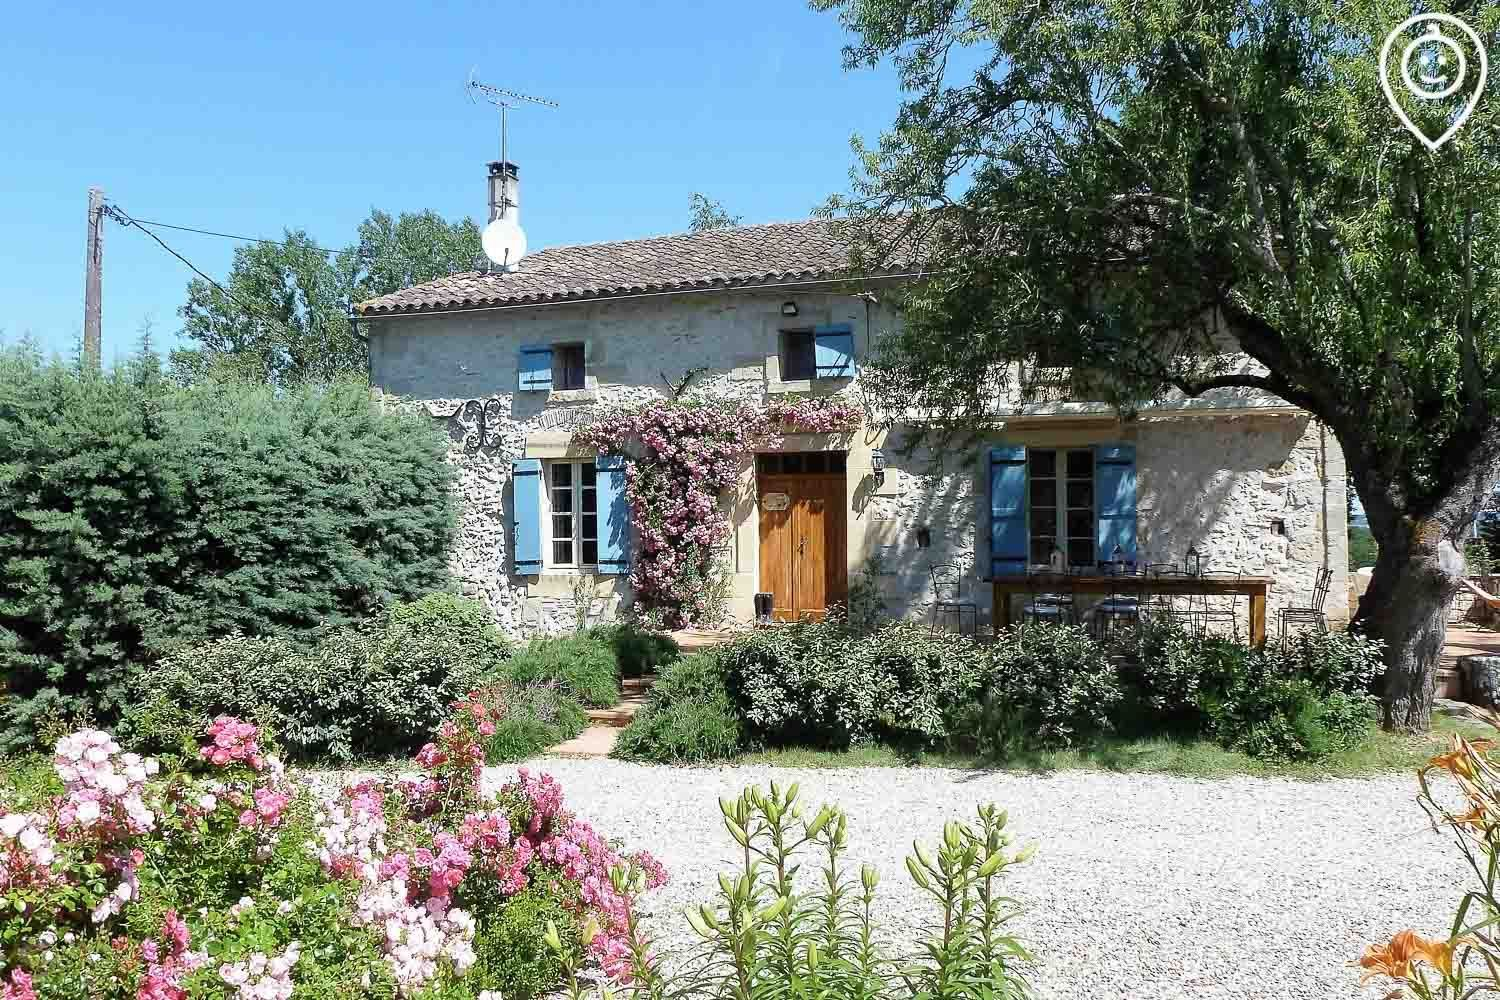 French Gites, Family Country Holiday Cottages & Gites with Pools -   18 holiday Home france ideas